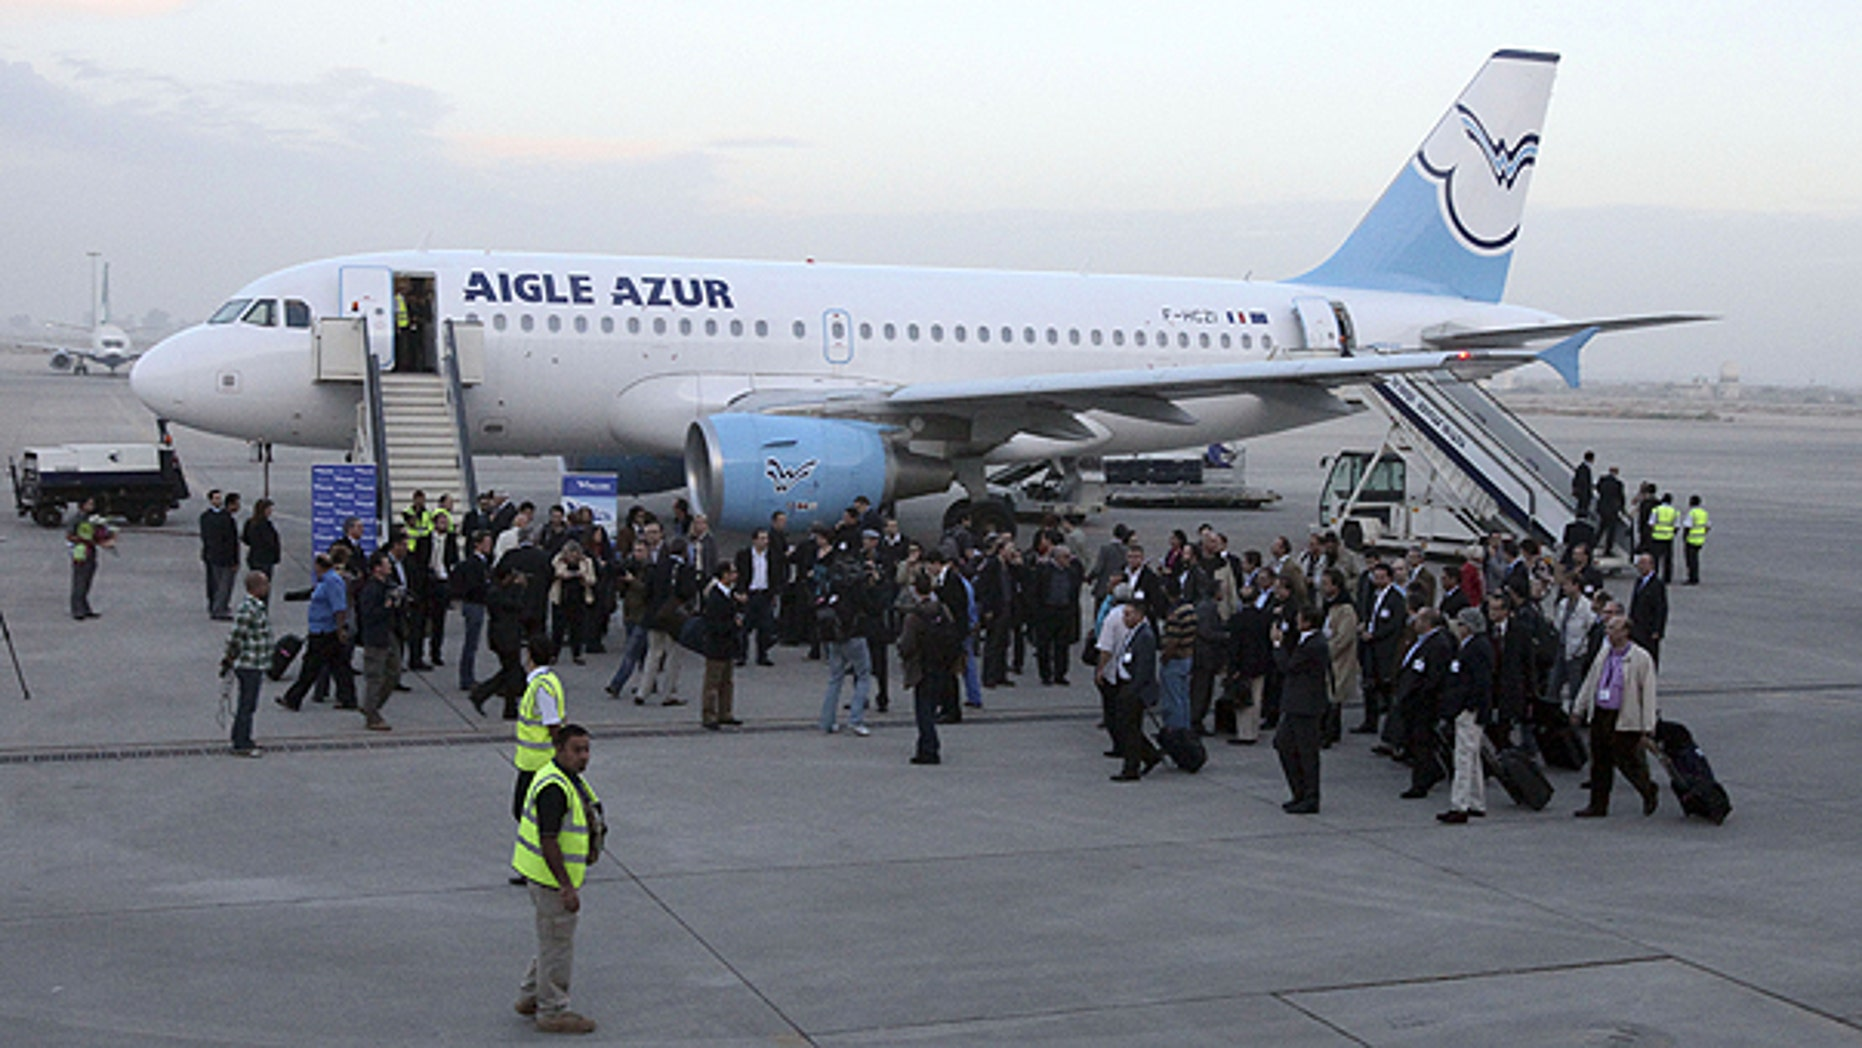 Oct. 31: A group of French business leaders leaves the Aigle Azur plane after arriving in Baghdad, Iraq.